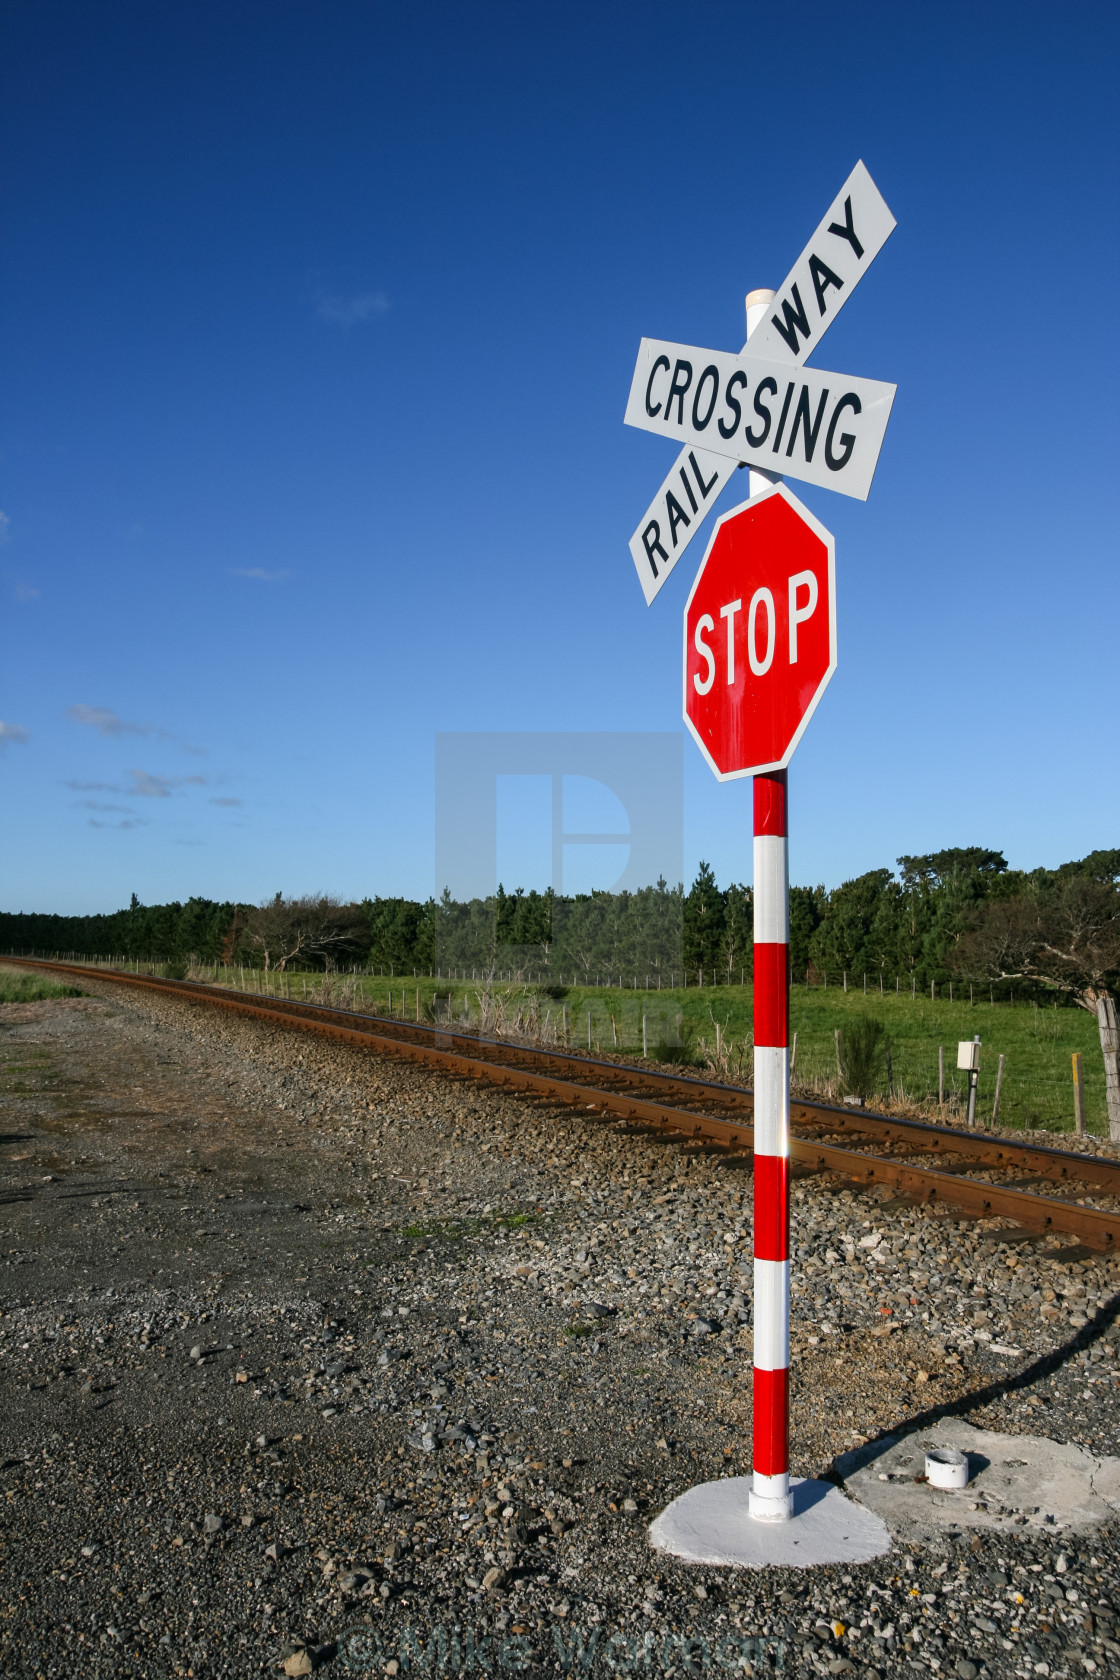 railway crossing sign - License, download or print for £6 20